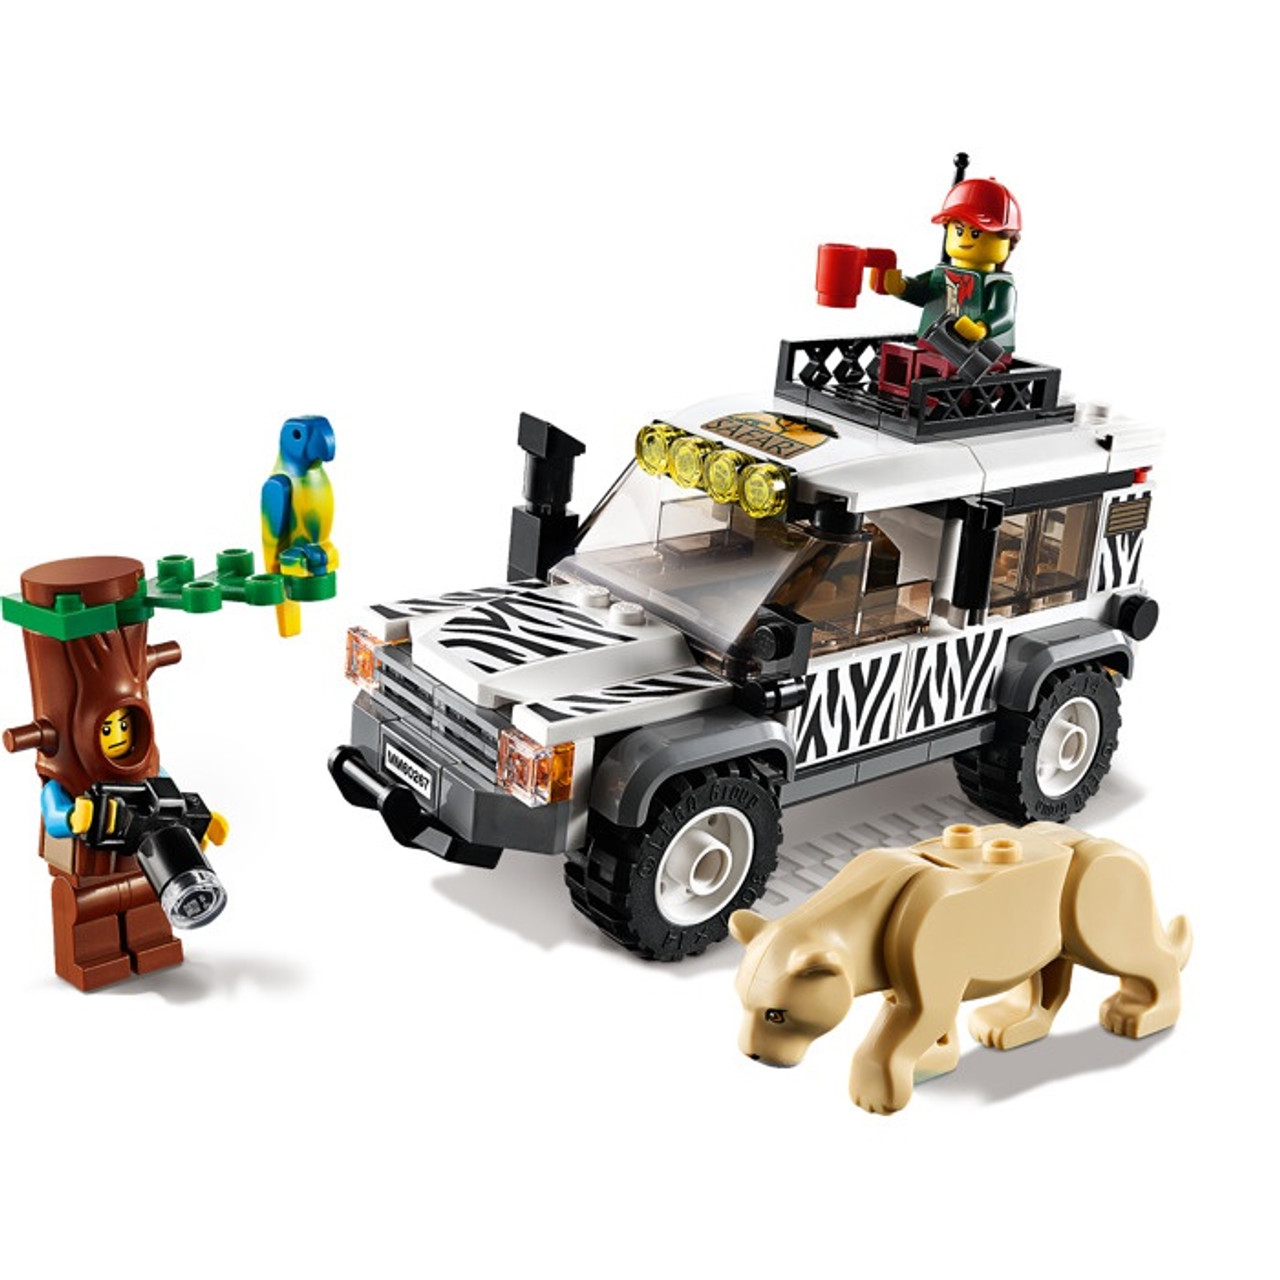 ALL TERRAIN SAFARI OFF ROADER VEHICLE ADVENTURE